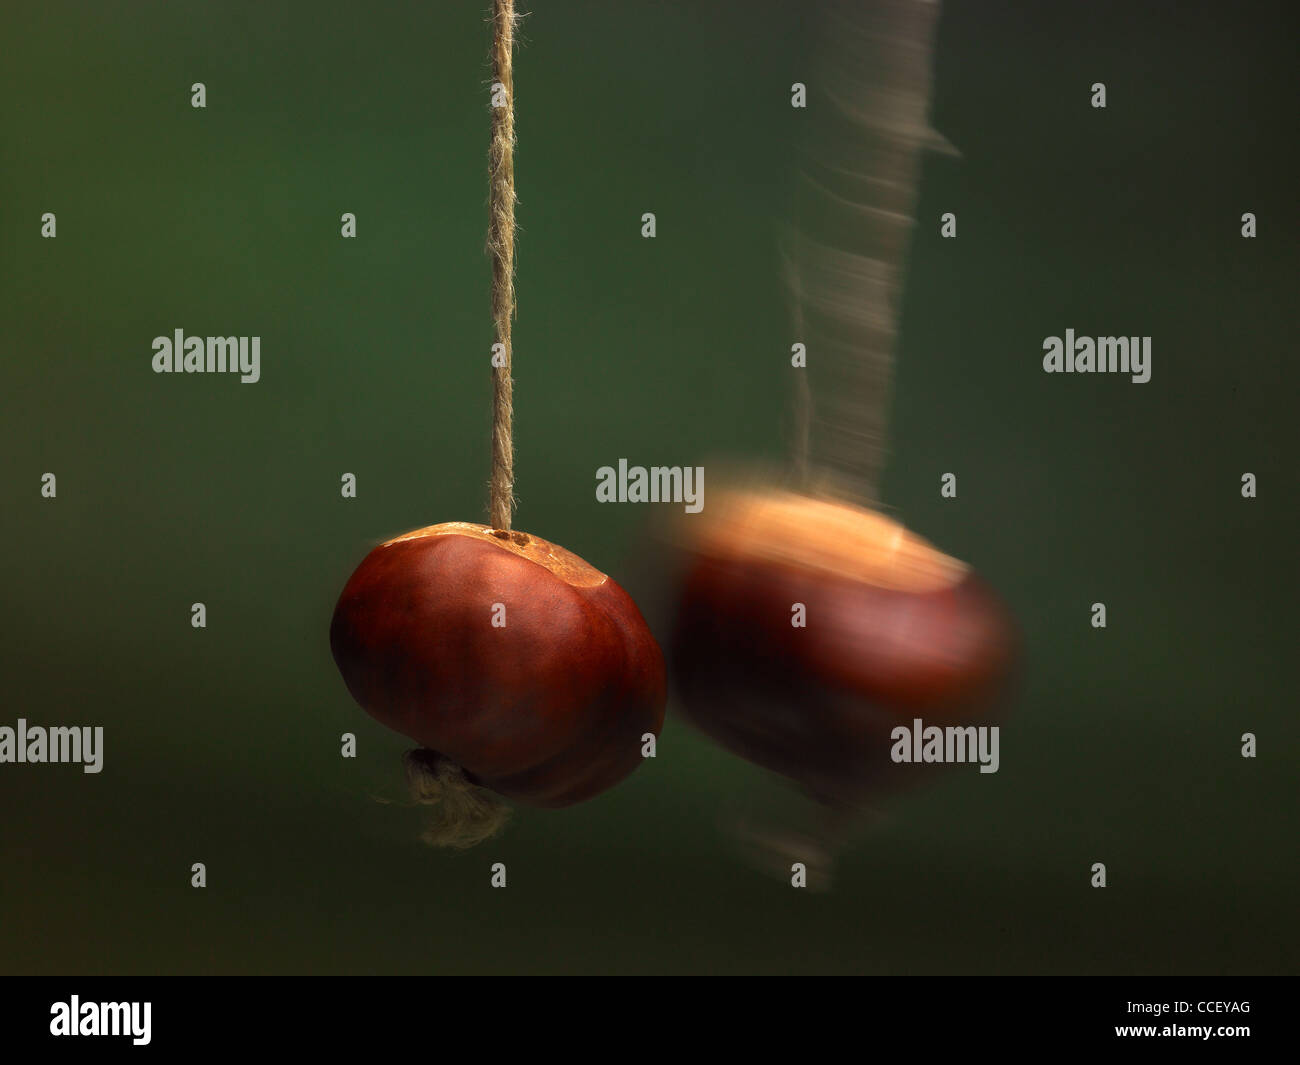 A conker striking another conker - Stock Image